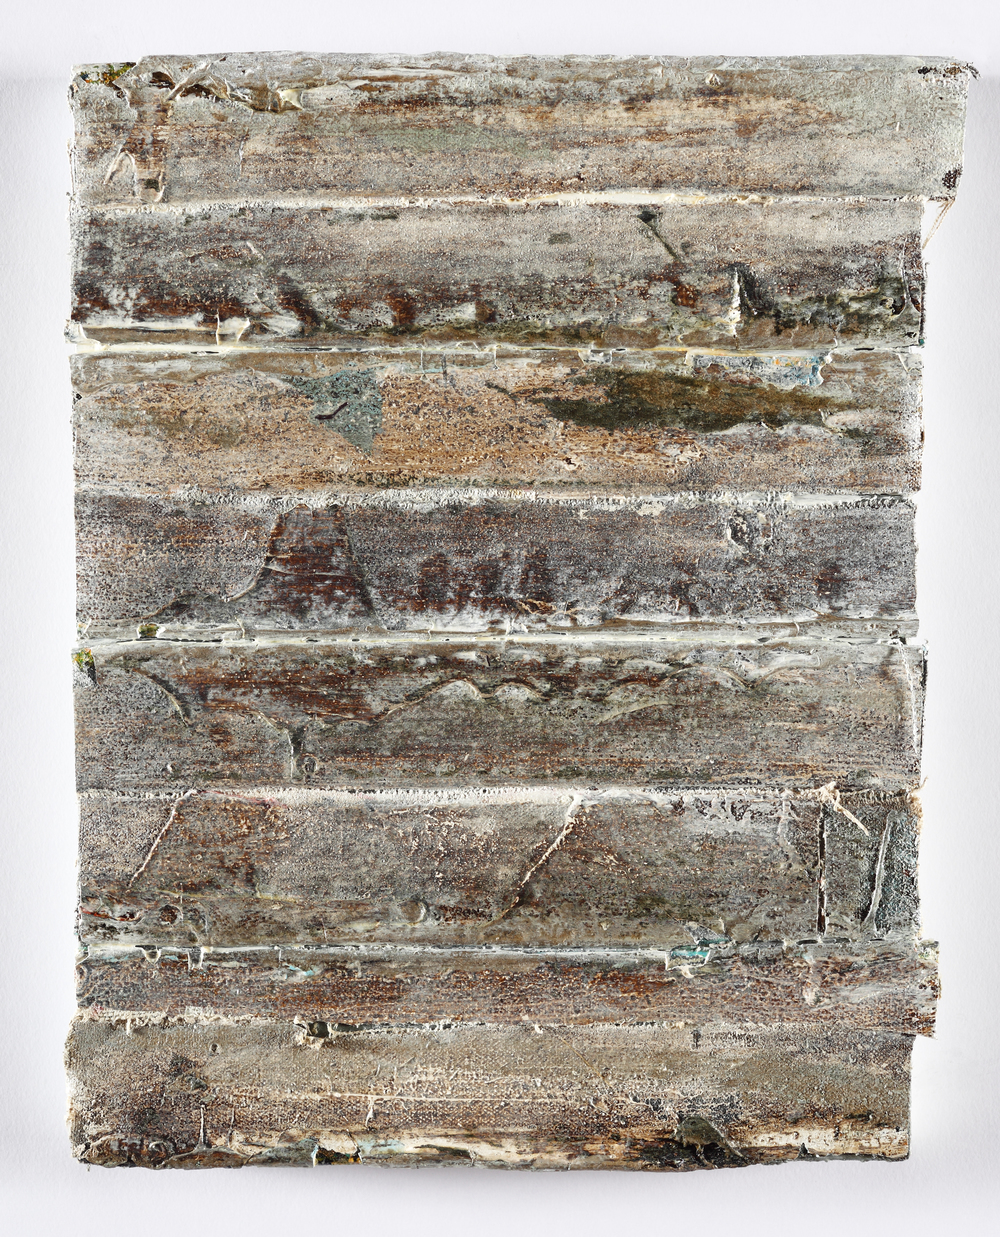 "edges, (pavement)   oil on salvaged canvas mounted on panel, 9x12"", 2012  collection of Martina Windels"